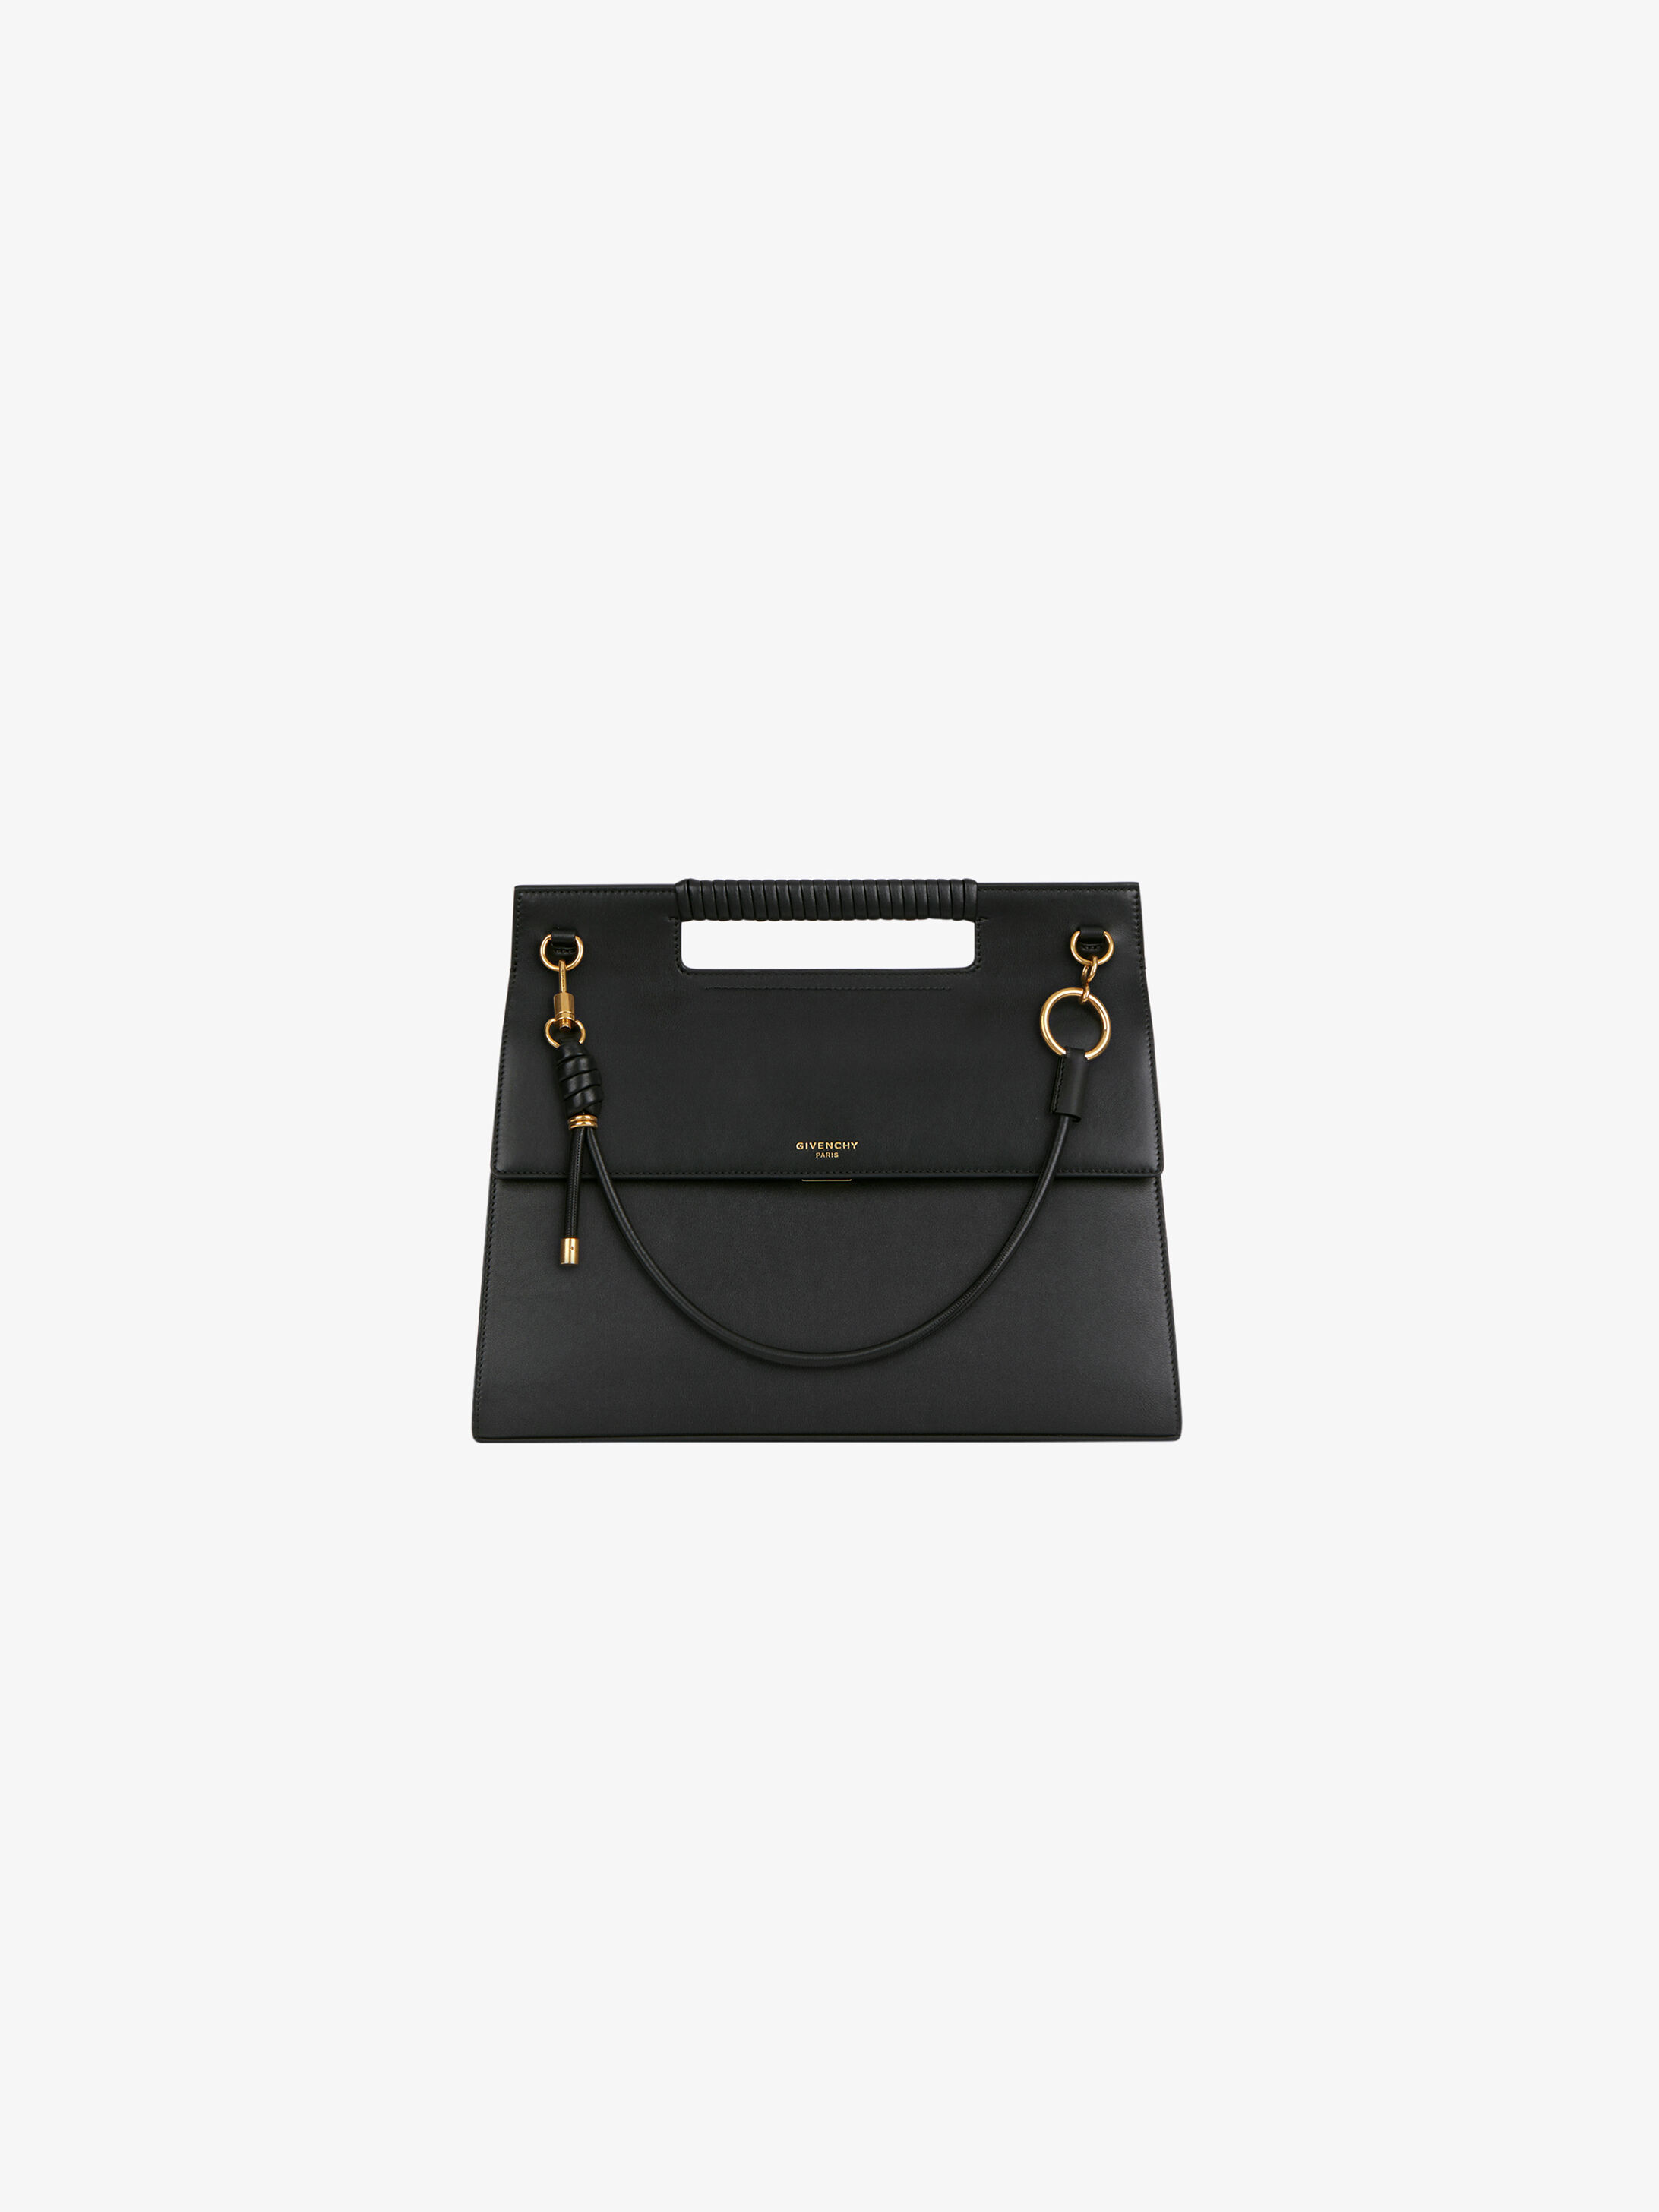 928567bcc1 Women s Handbags collection by Givenchy.